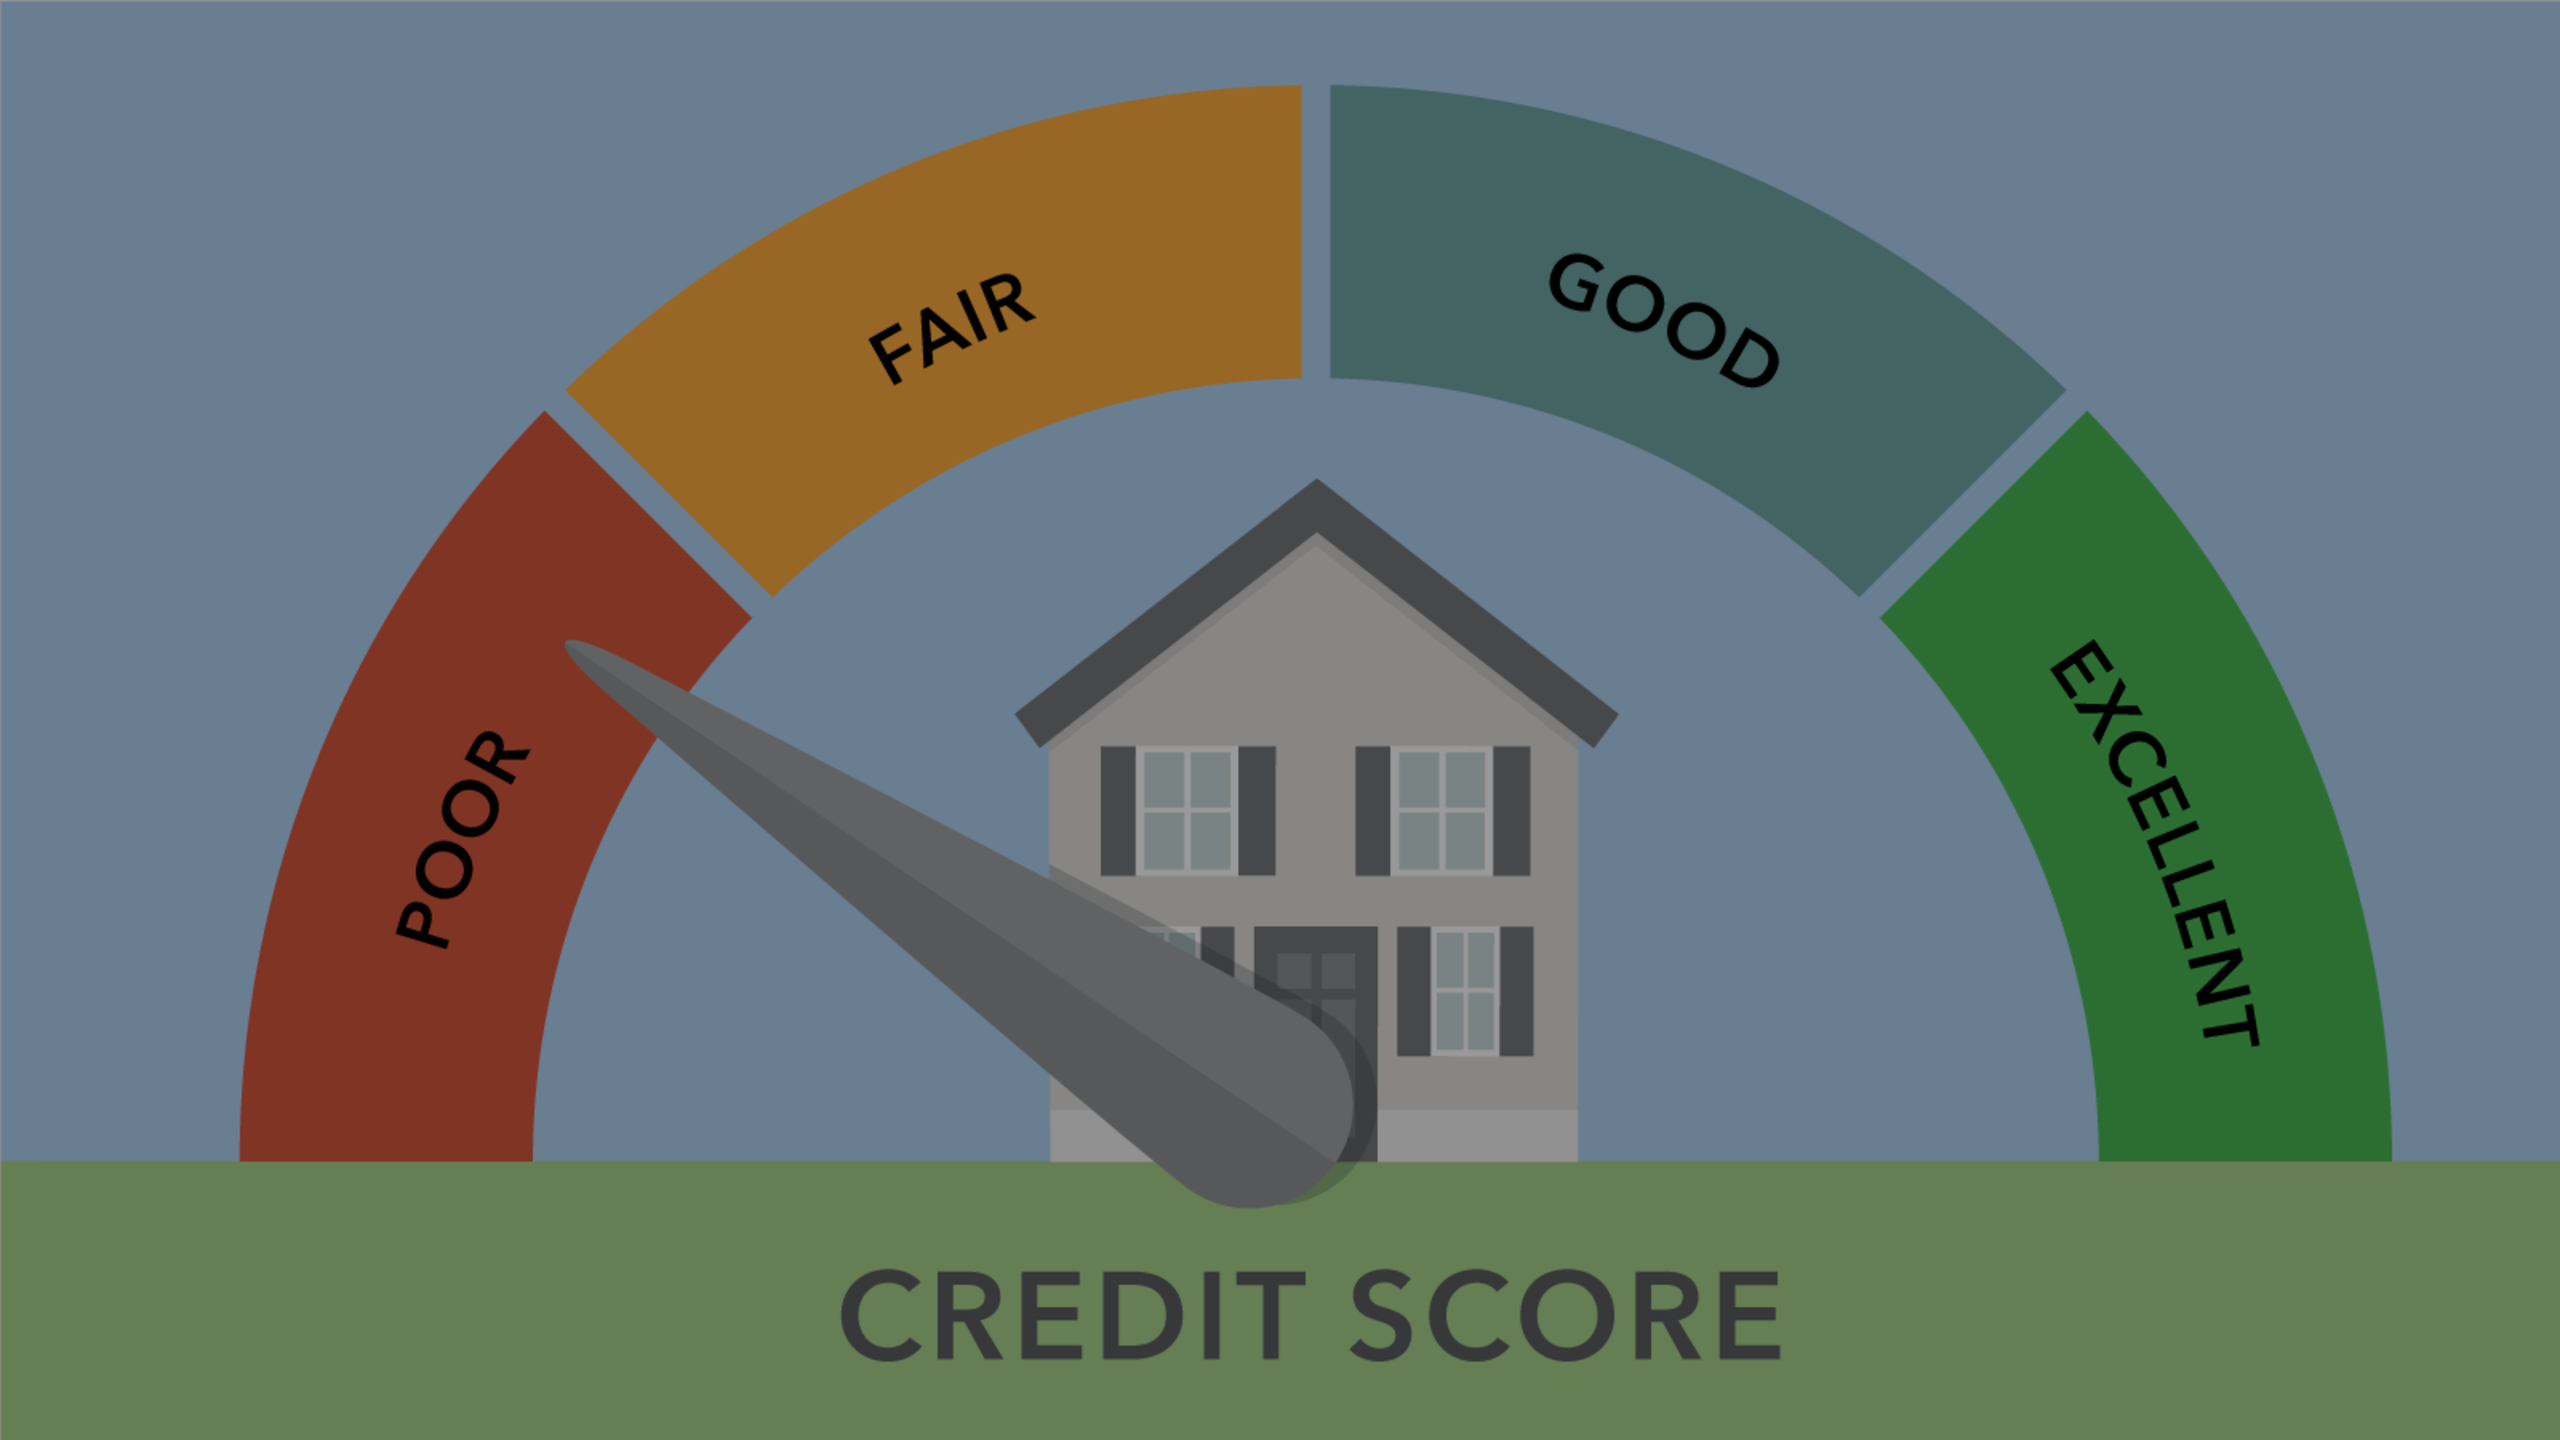 Credit Scores – What should my credit score be to buy a home?